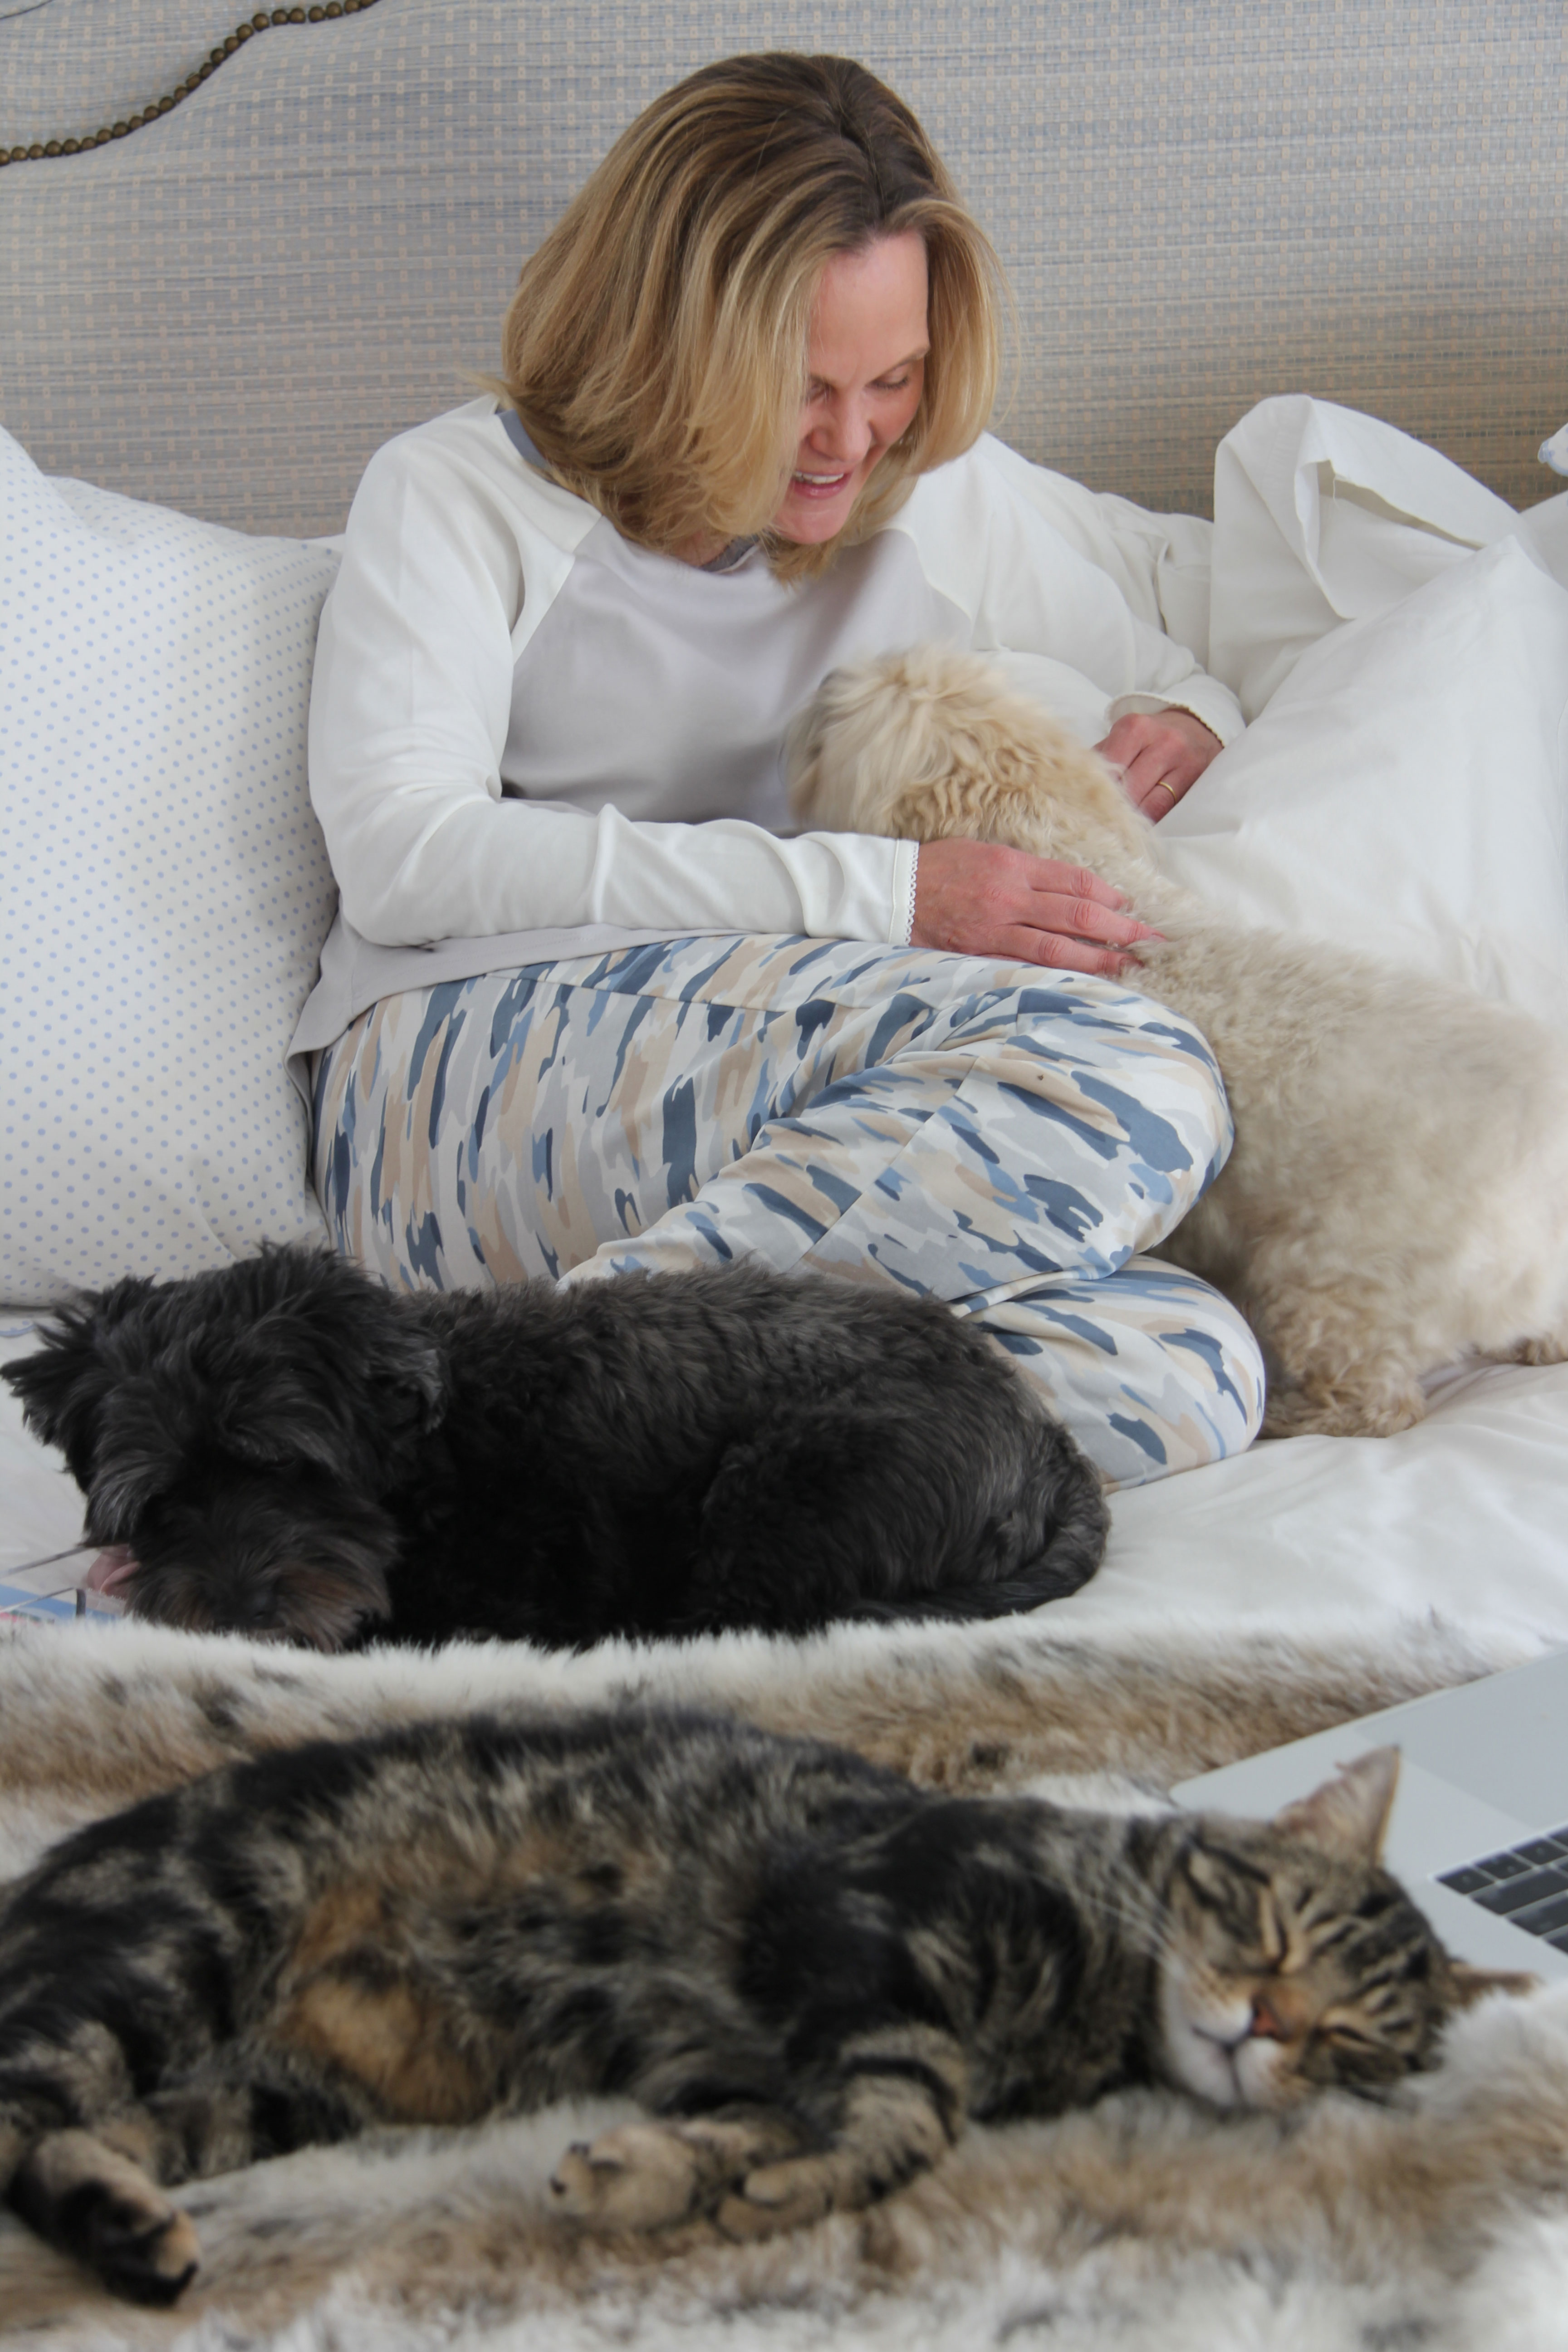 There is nothing better than a cozy, comfortable pair pf PJ's and Ridgely Brode shares her latest favorite on her blog, Ridgely's Radar.